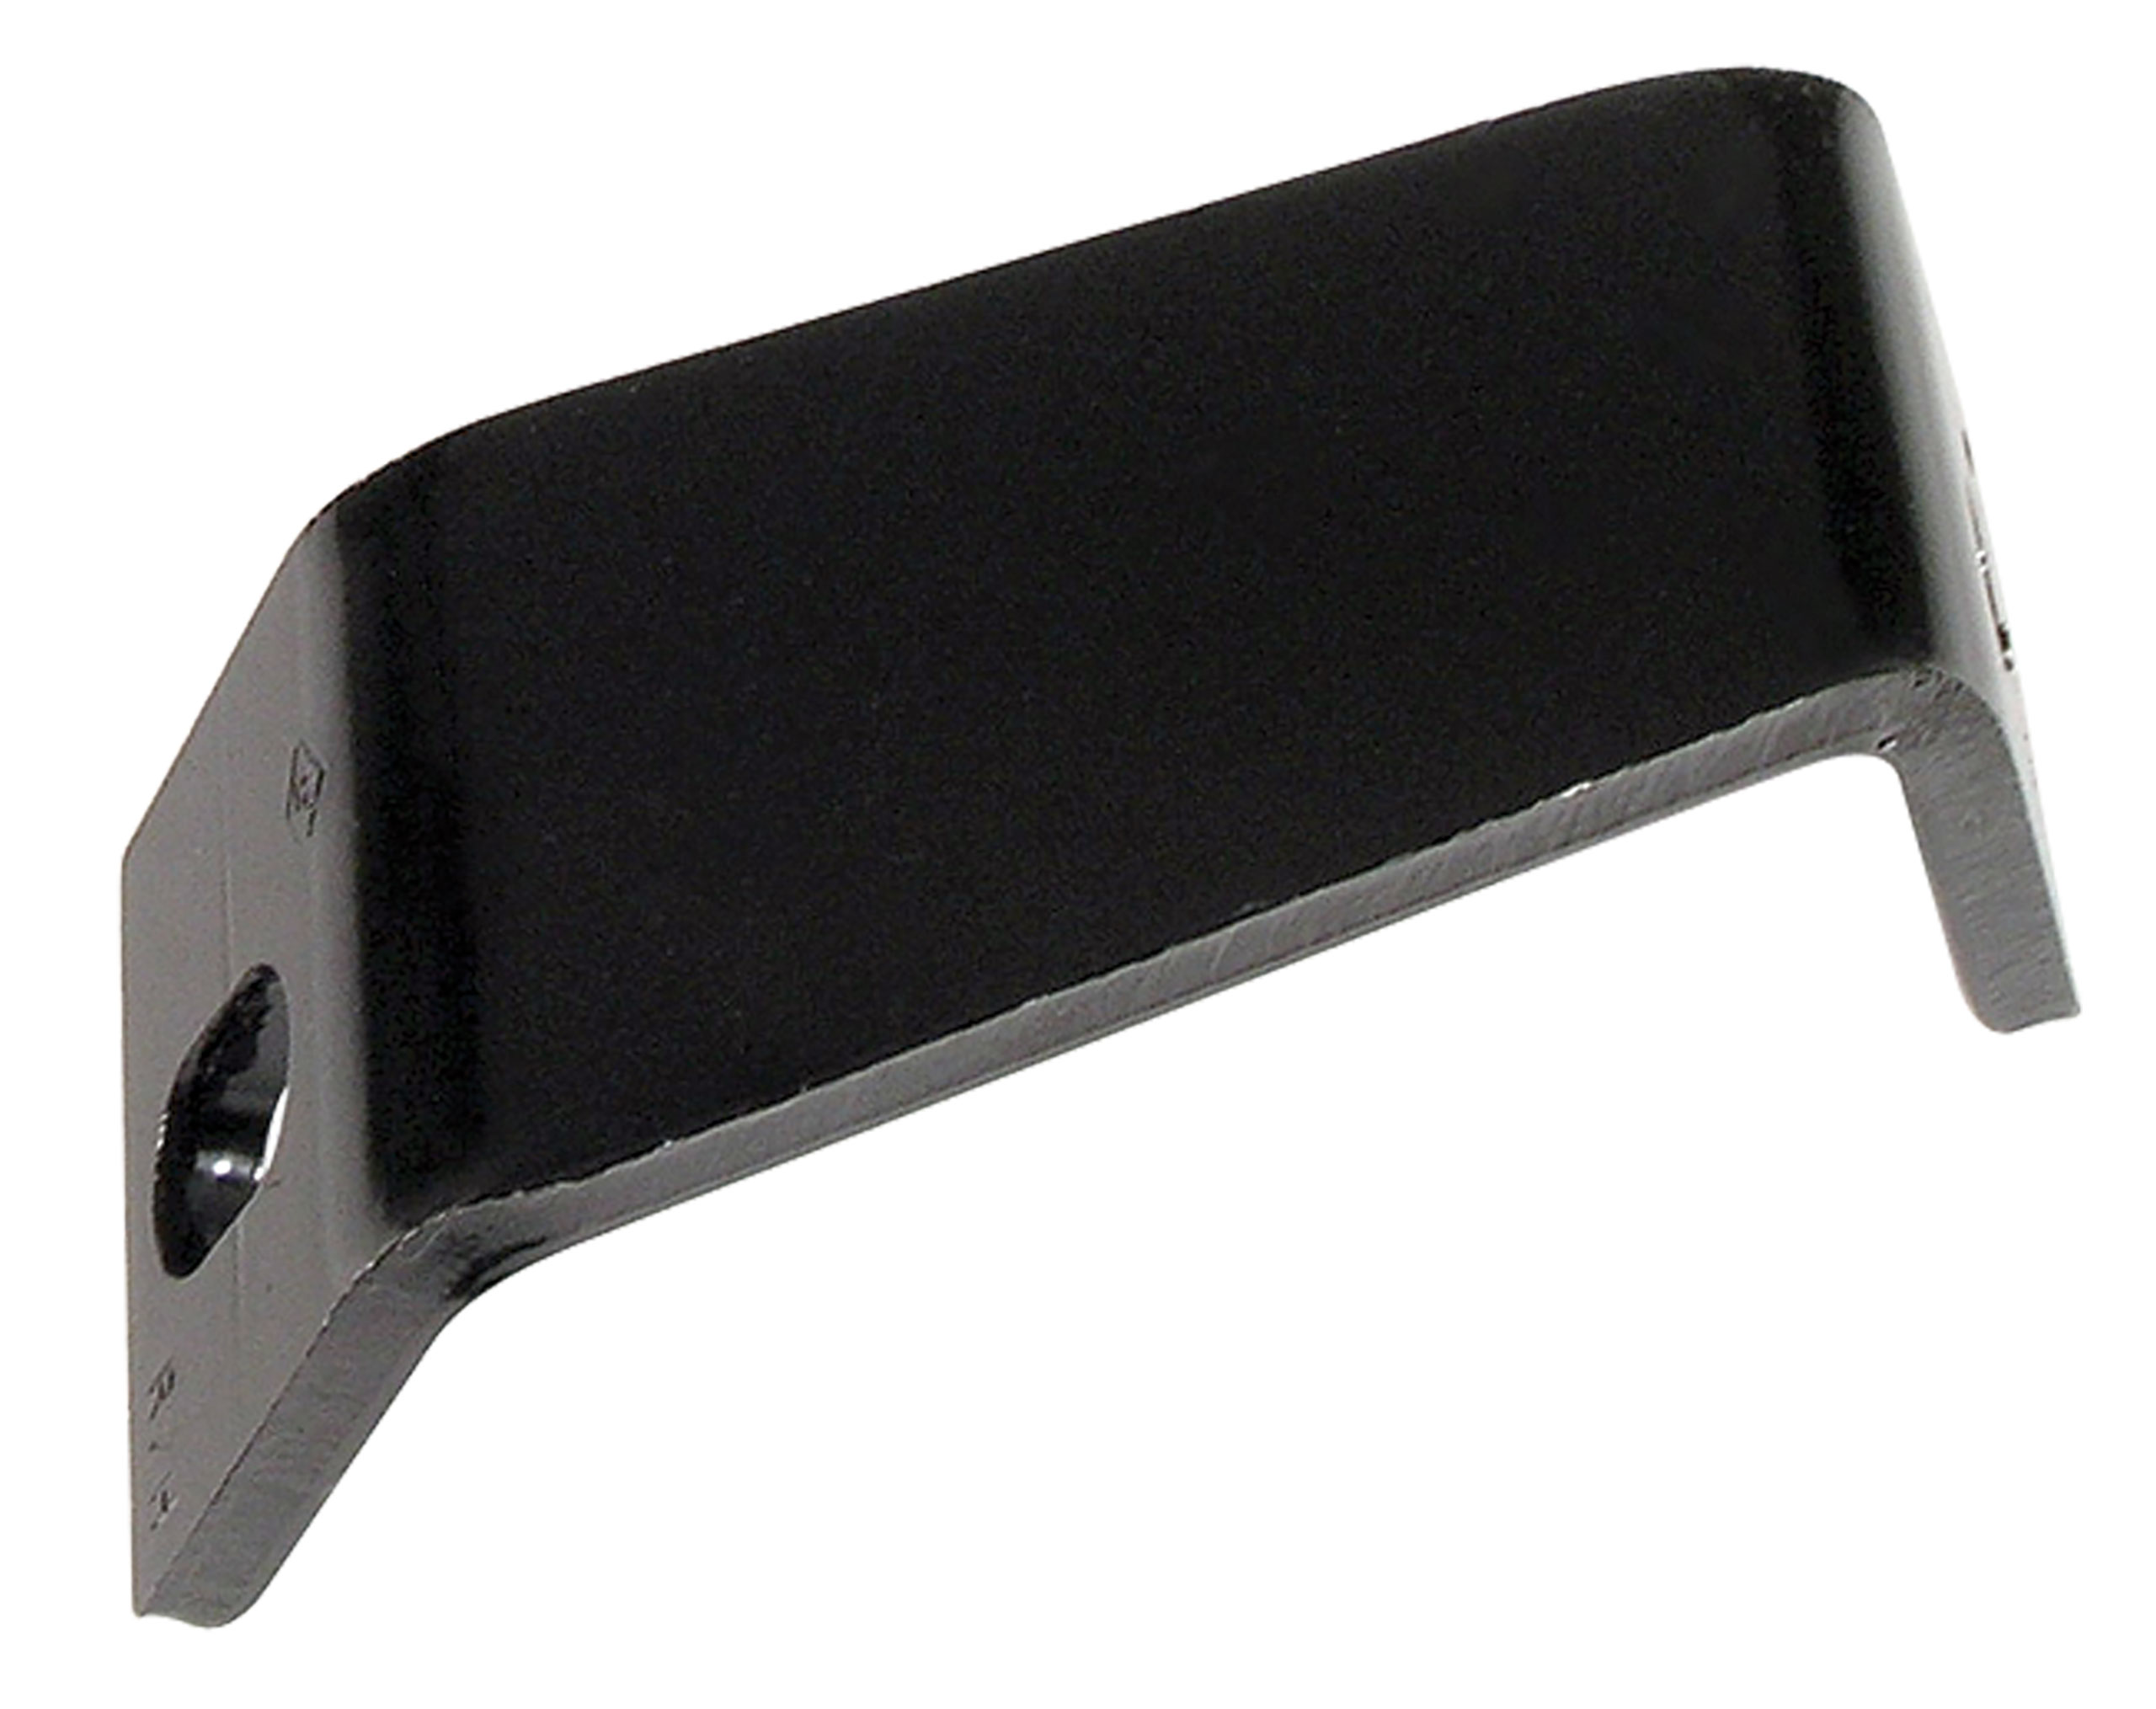 Auto Accessories of America 1968-1969 Chevrolet Corvette Front Bumper Outer Extension Bracket. RH